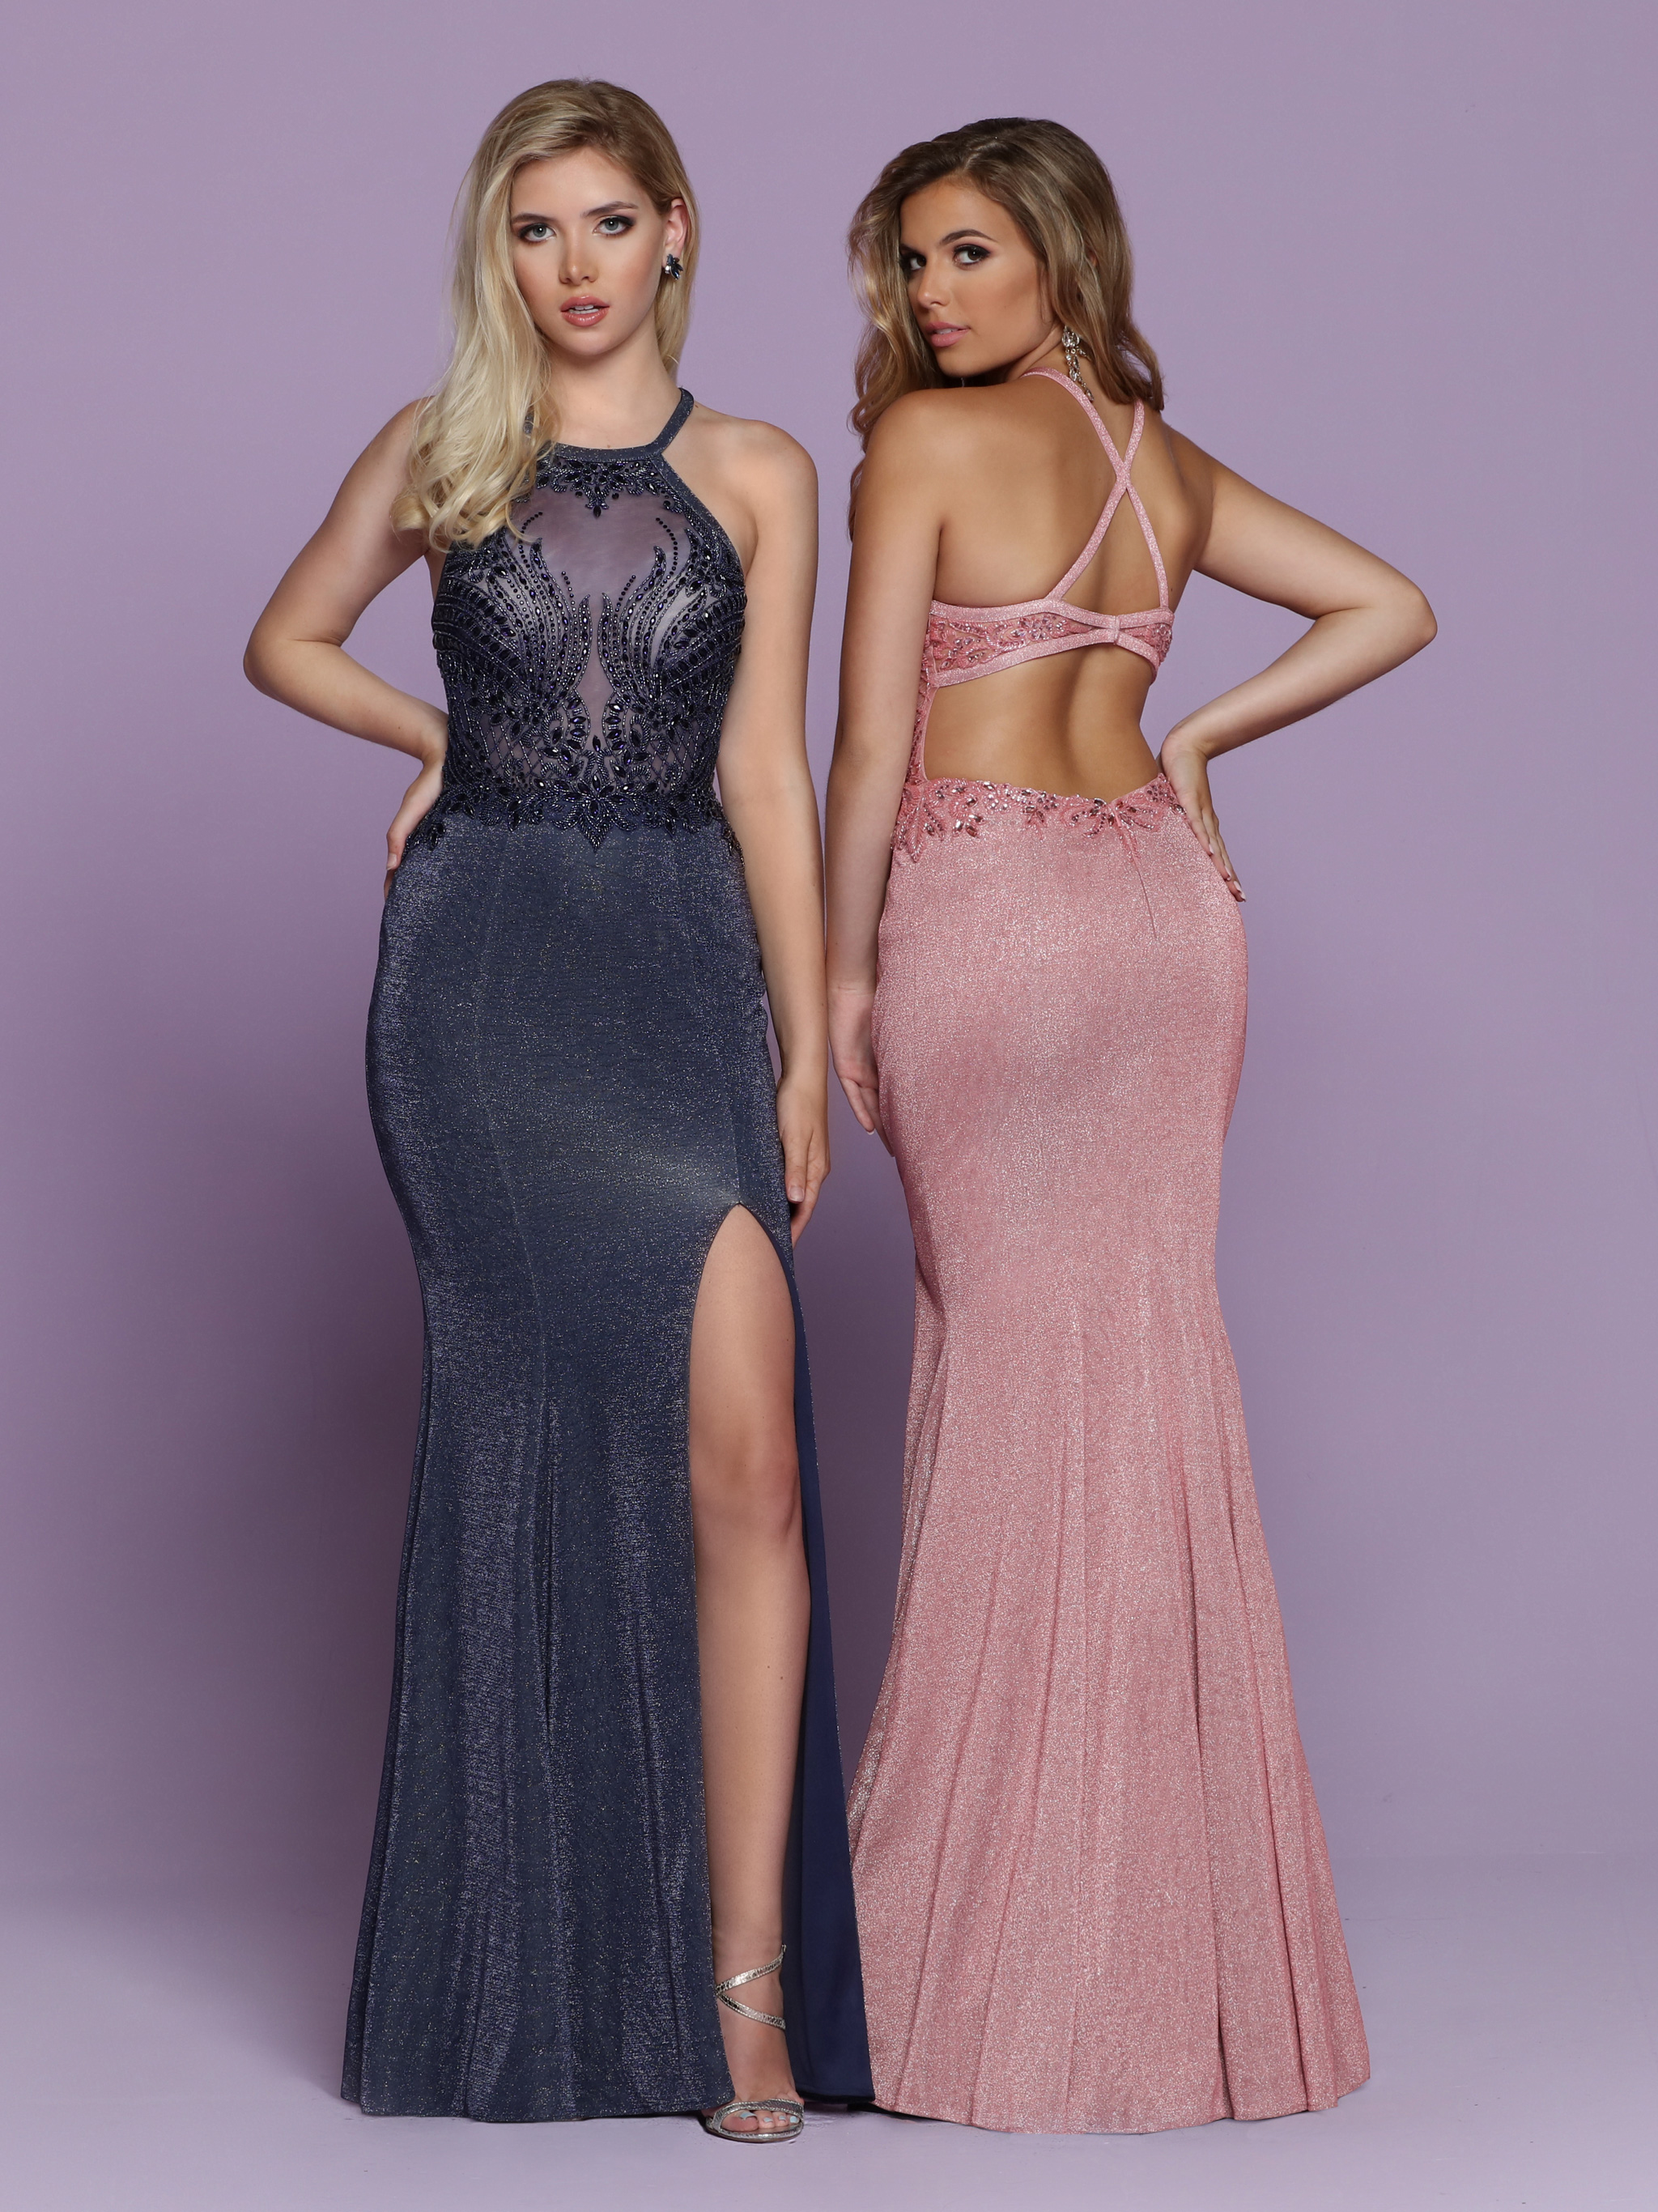 Image showing back view of style #72080